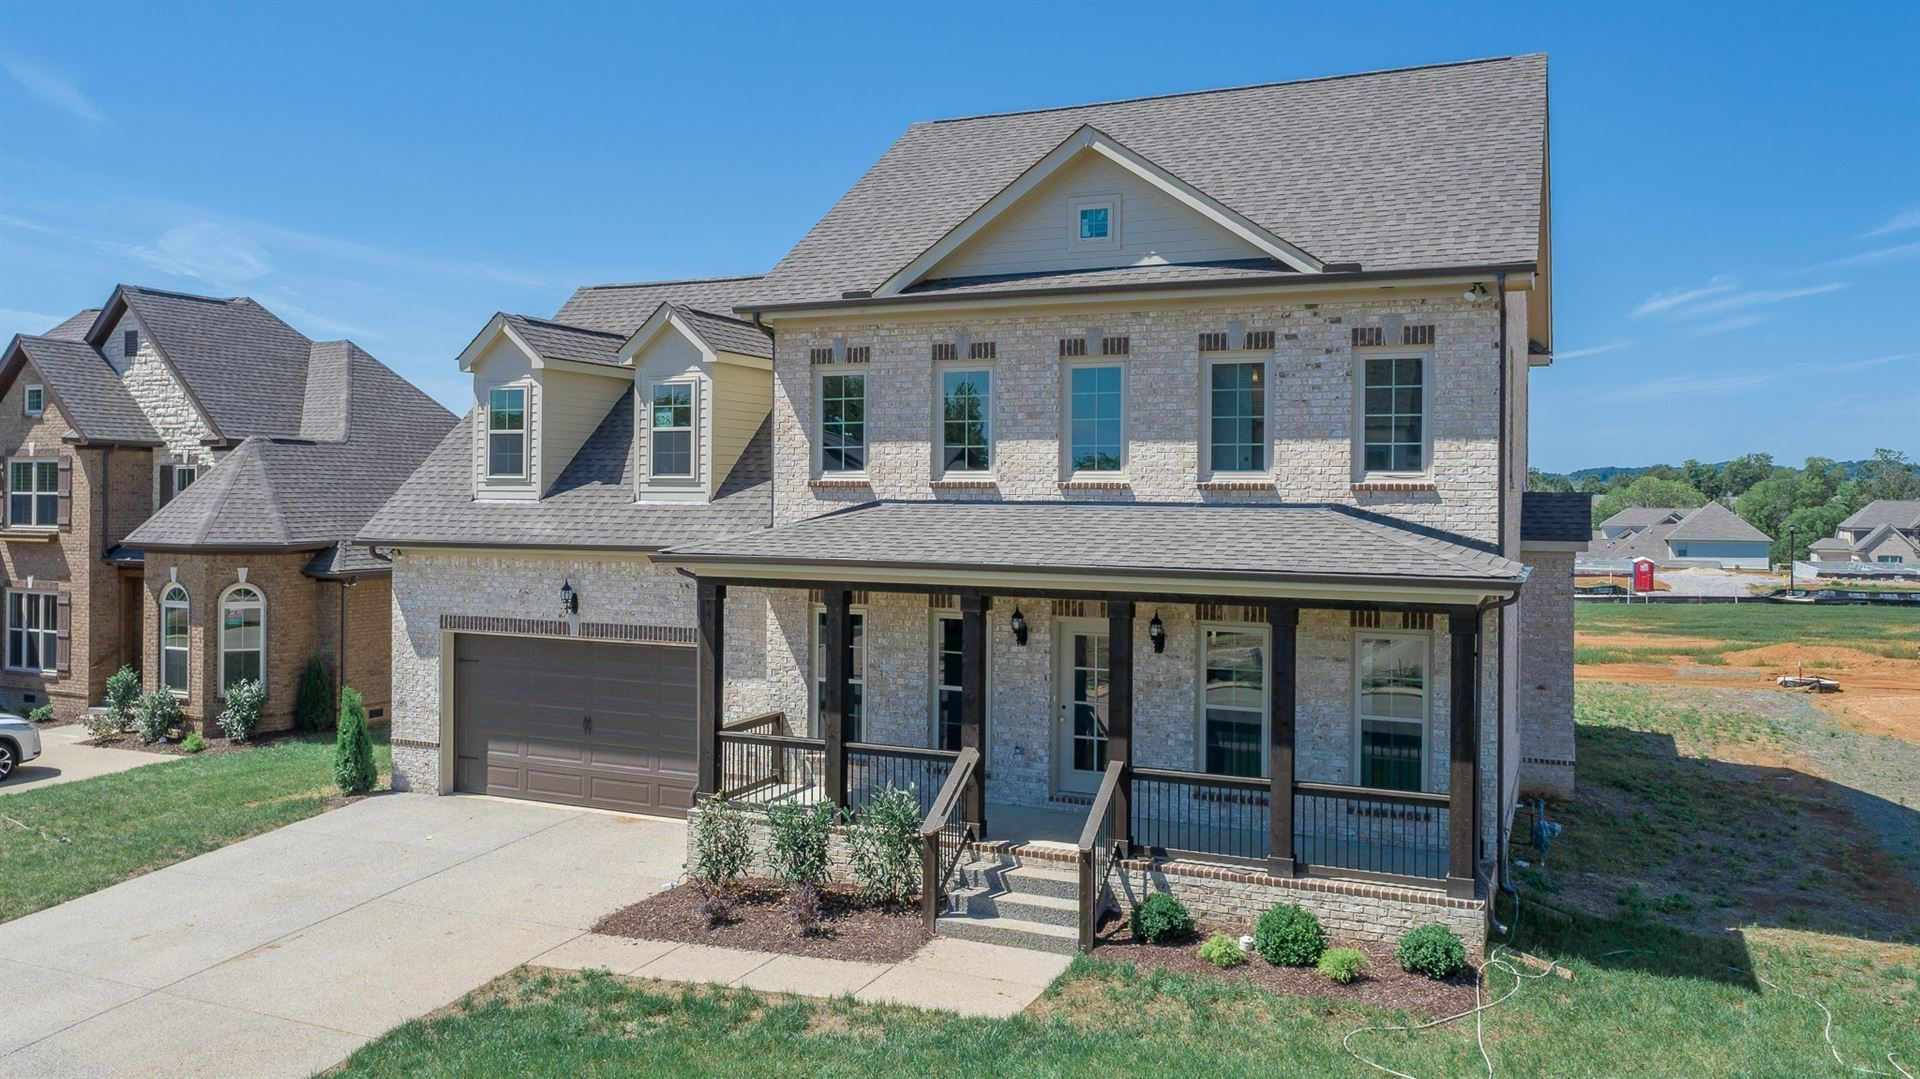 Photo of 8007 Brightwater Way, Spring Hill, TN 37174 (MLS # 2292311)